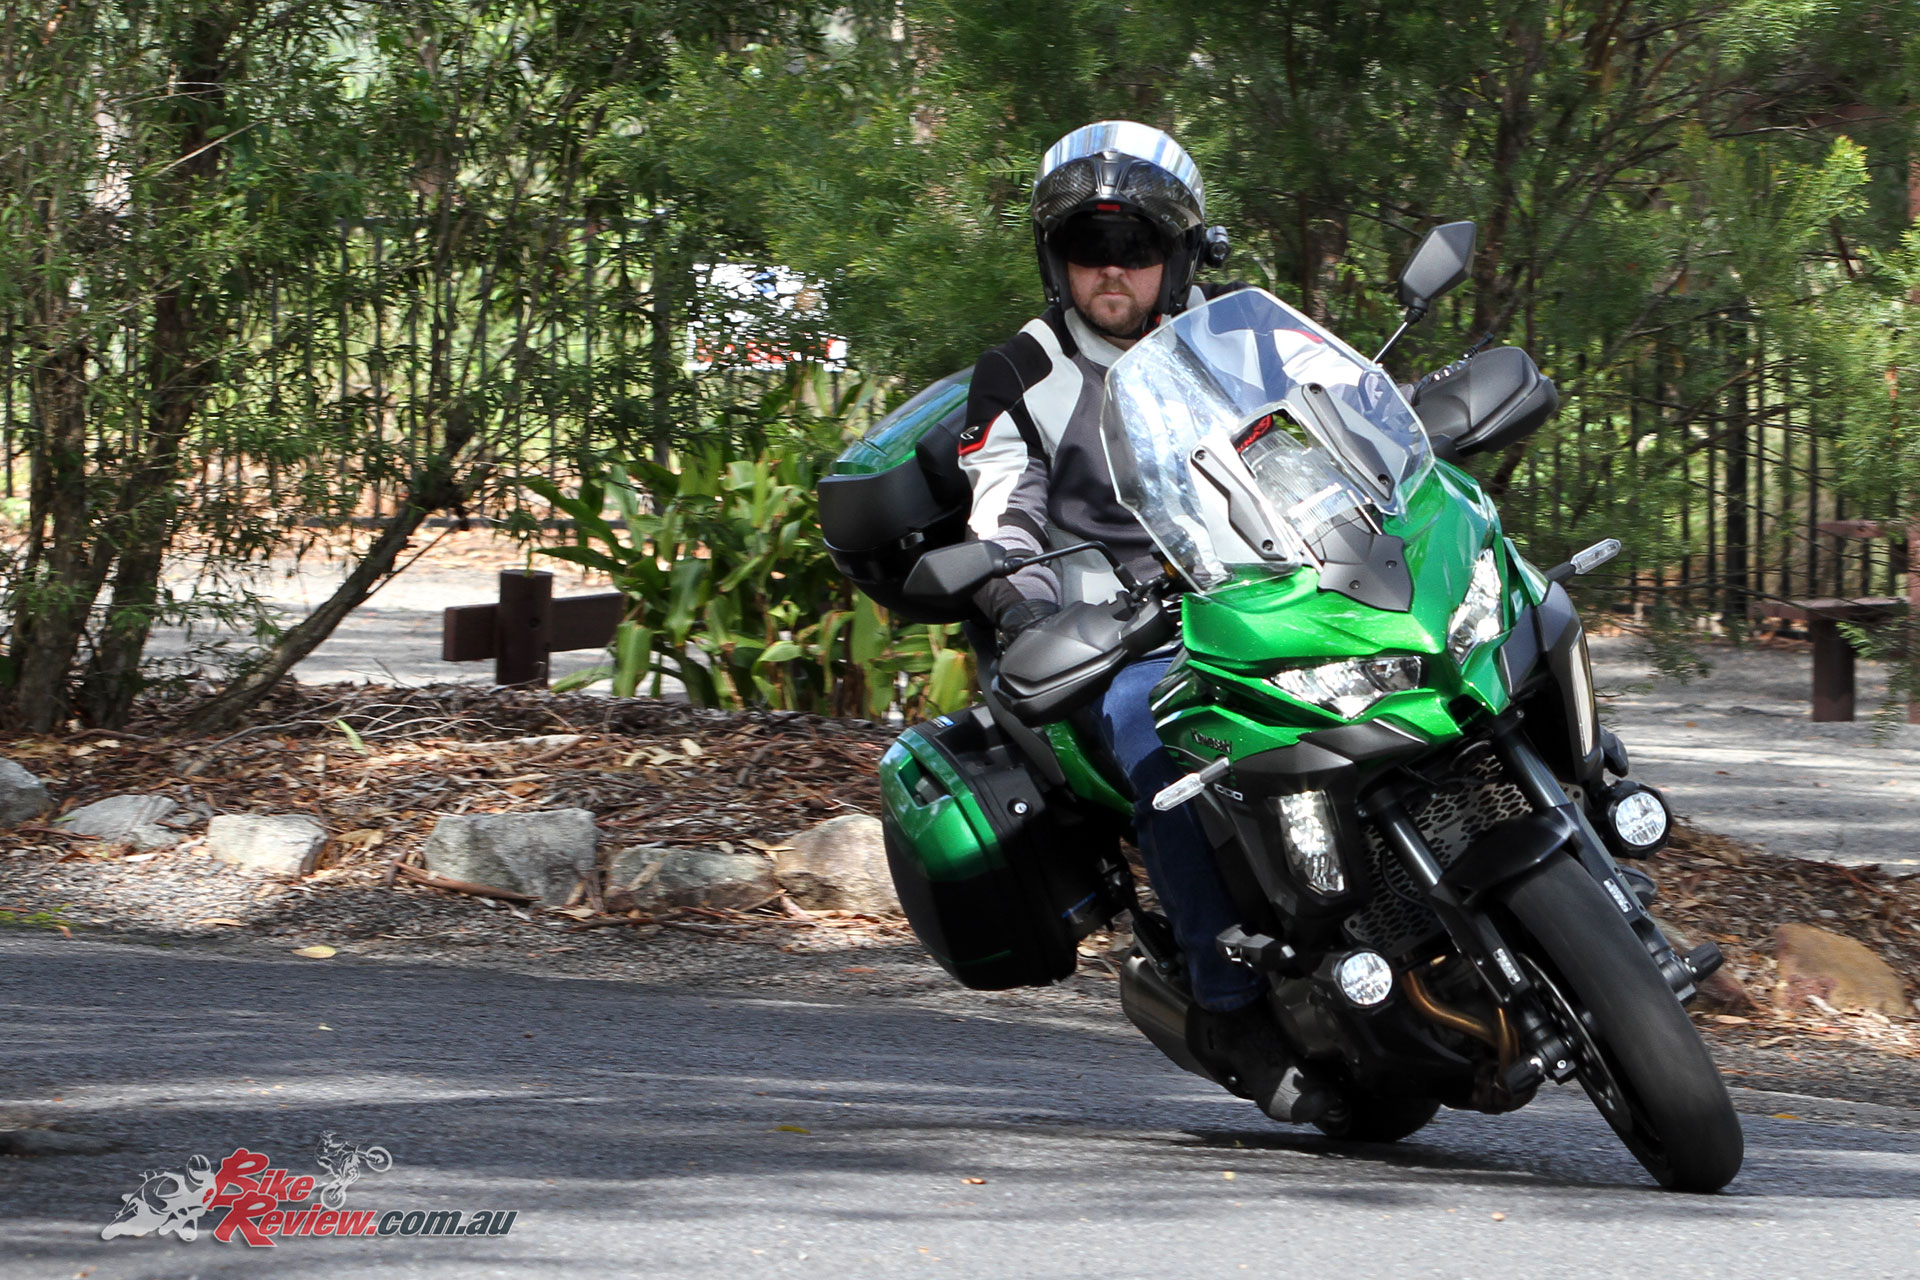 The one area I found the Versys 1000 SE a handful was through the tight hairpin turns